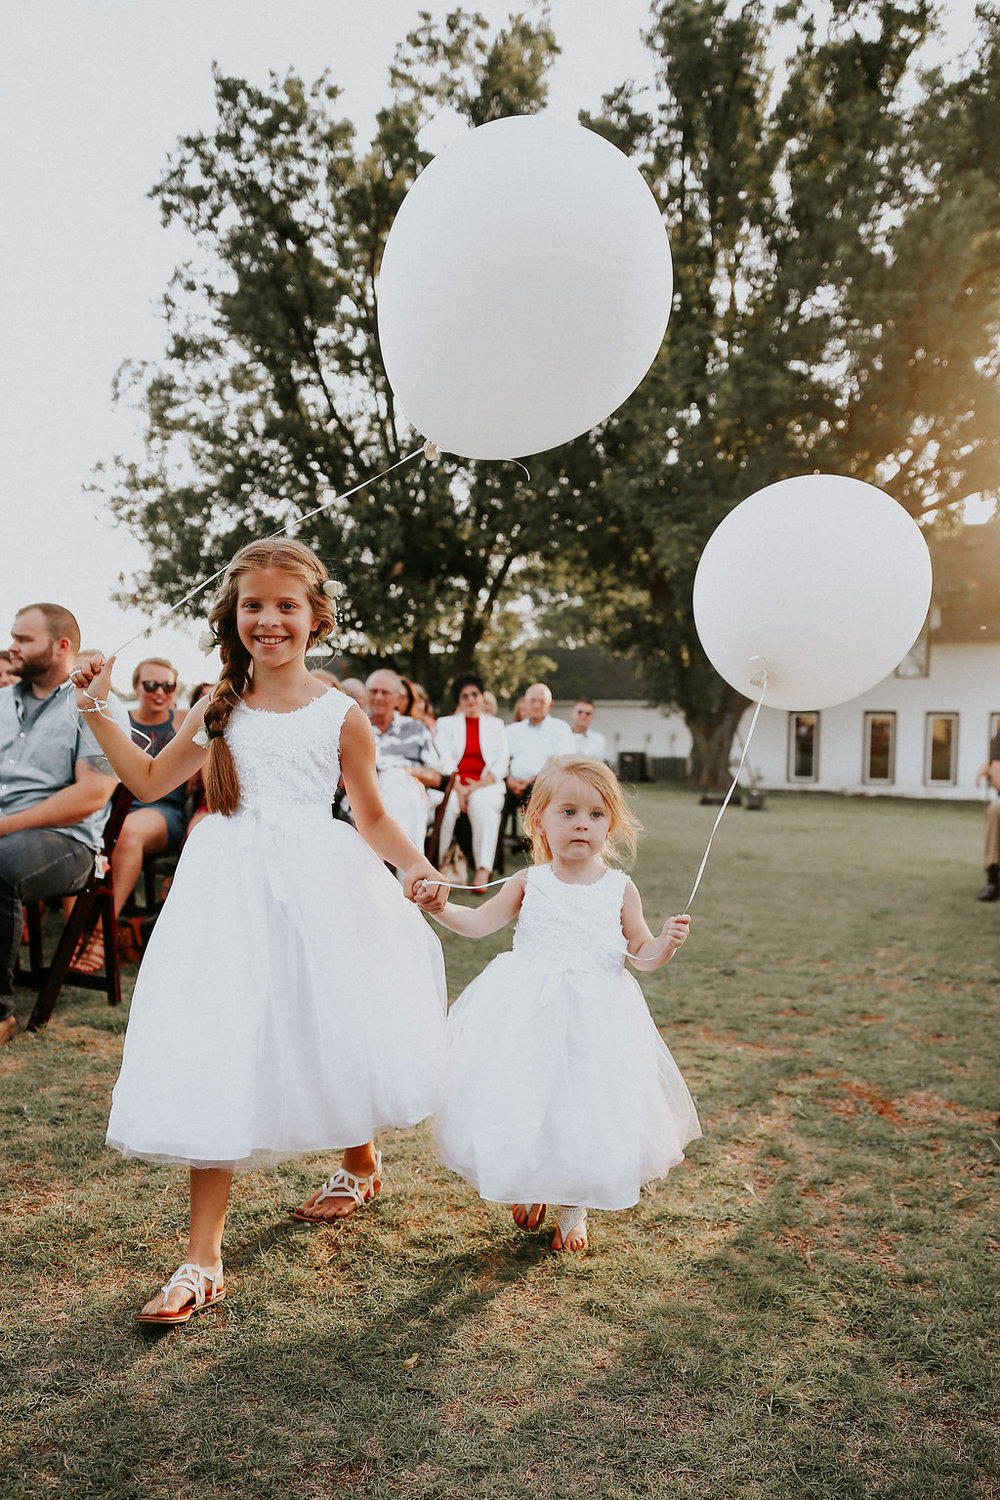 The sweetest girls lead the way down the aisle with giant balloons in tow